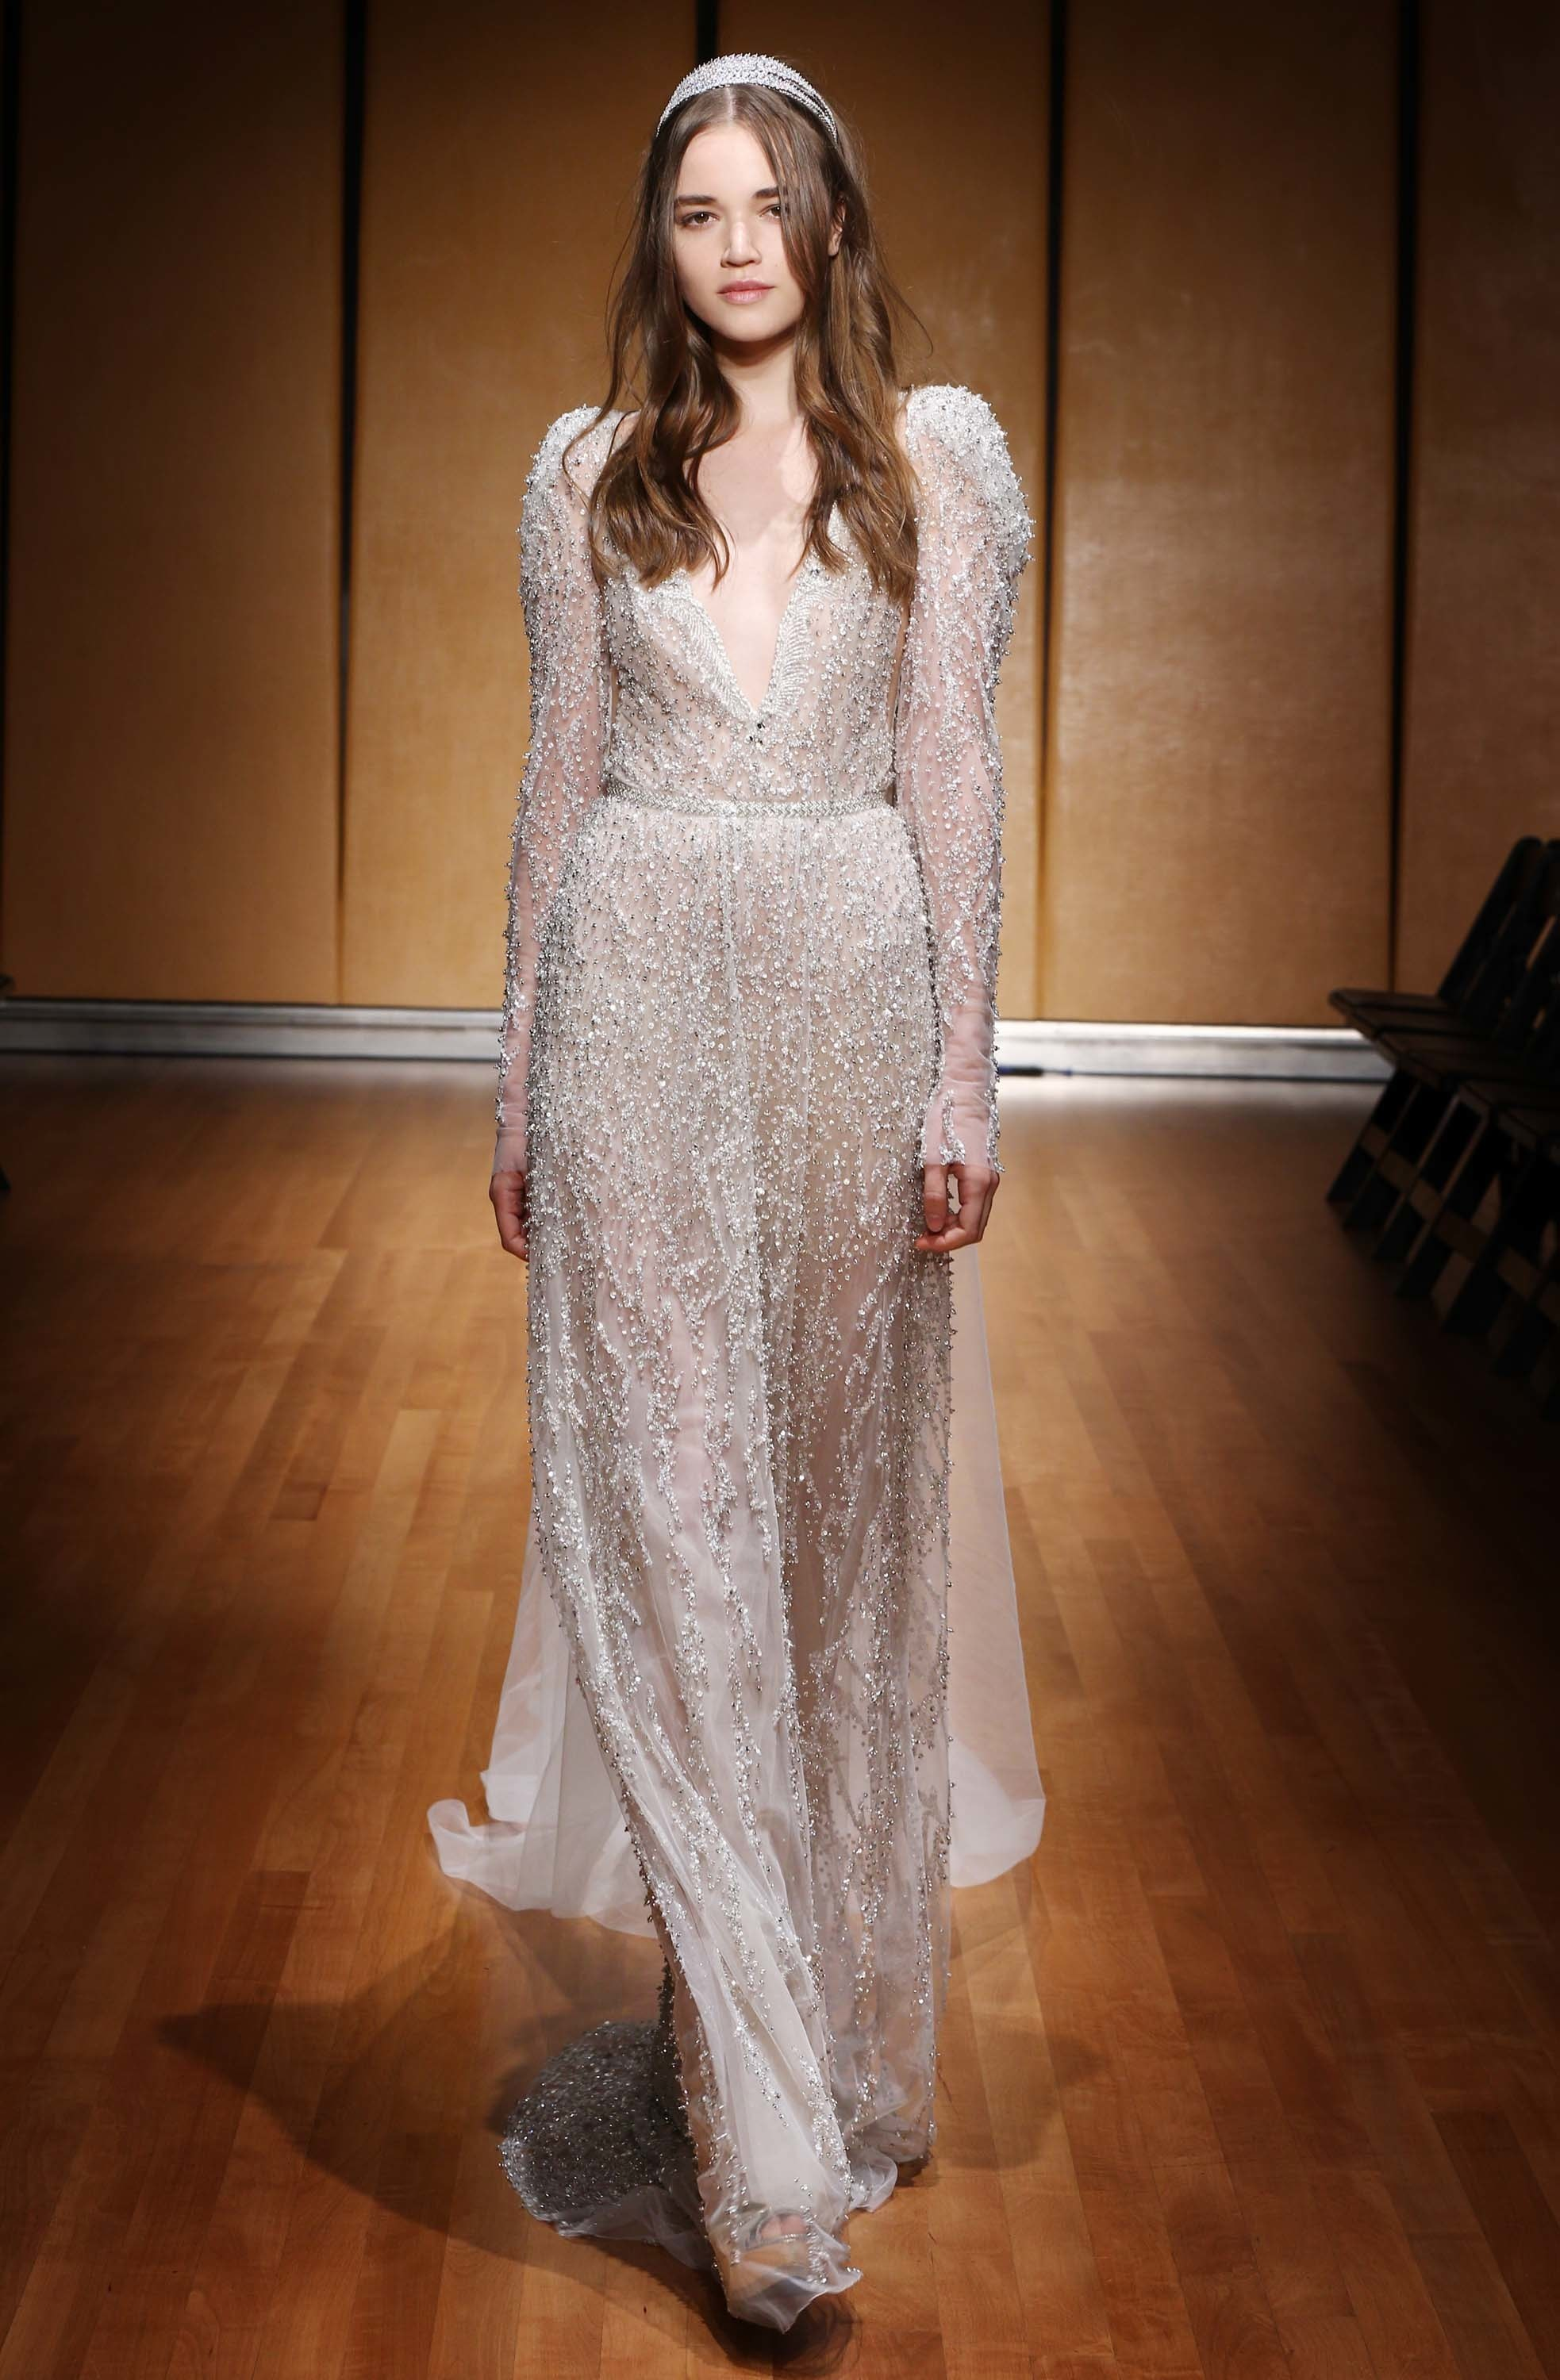 LOVE FIND CO. // The hottest bridal gown trends of 2016 - Inbal Dror // Follow @lovefindco on Instagram & Pinterest